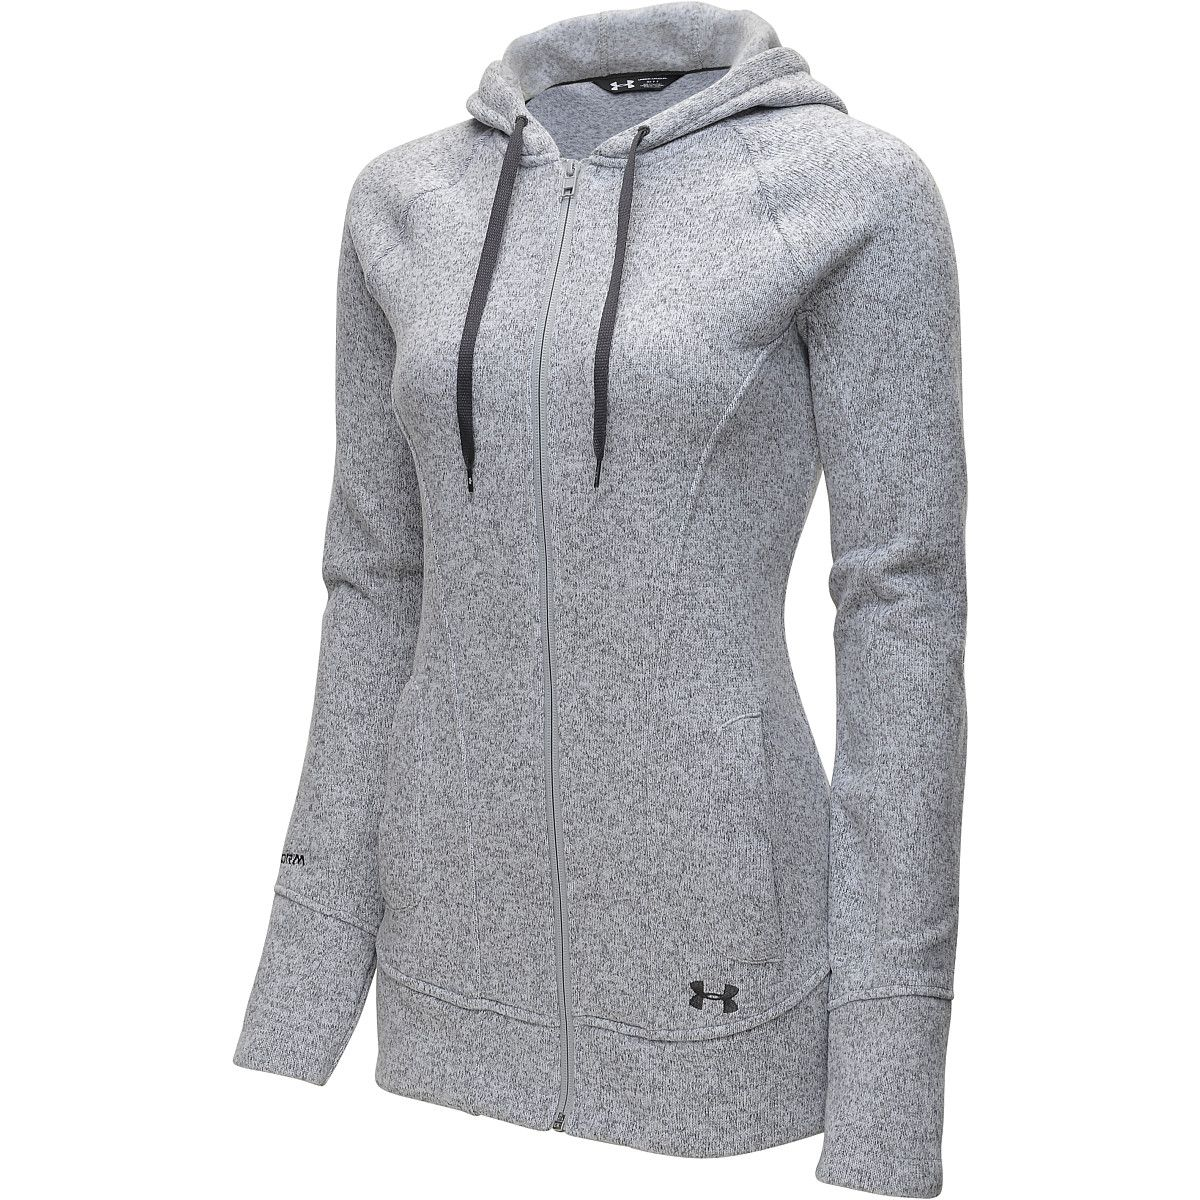 Crafted from sweaterknit fleece fabric the under armour womenus